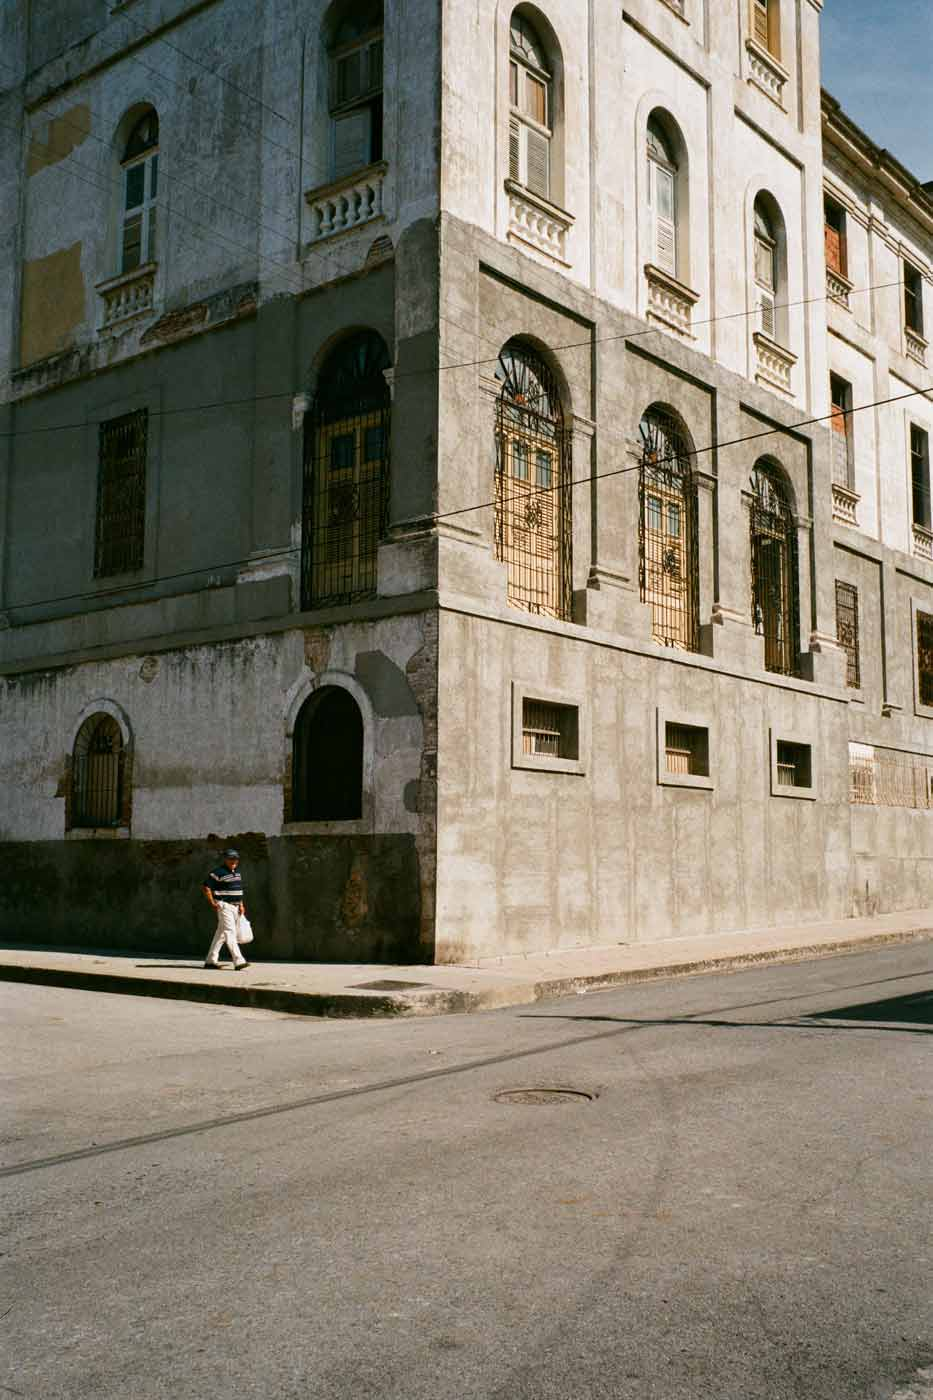 35mm-focal-length-guide-tips-beginner-documentary-story-telling-zone-focus-field-view-perspective-compression-angle-summilux-cuba-havana-film-photography-corner-street